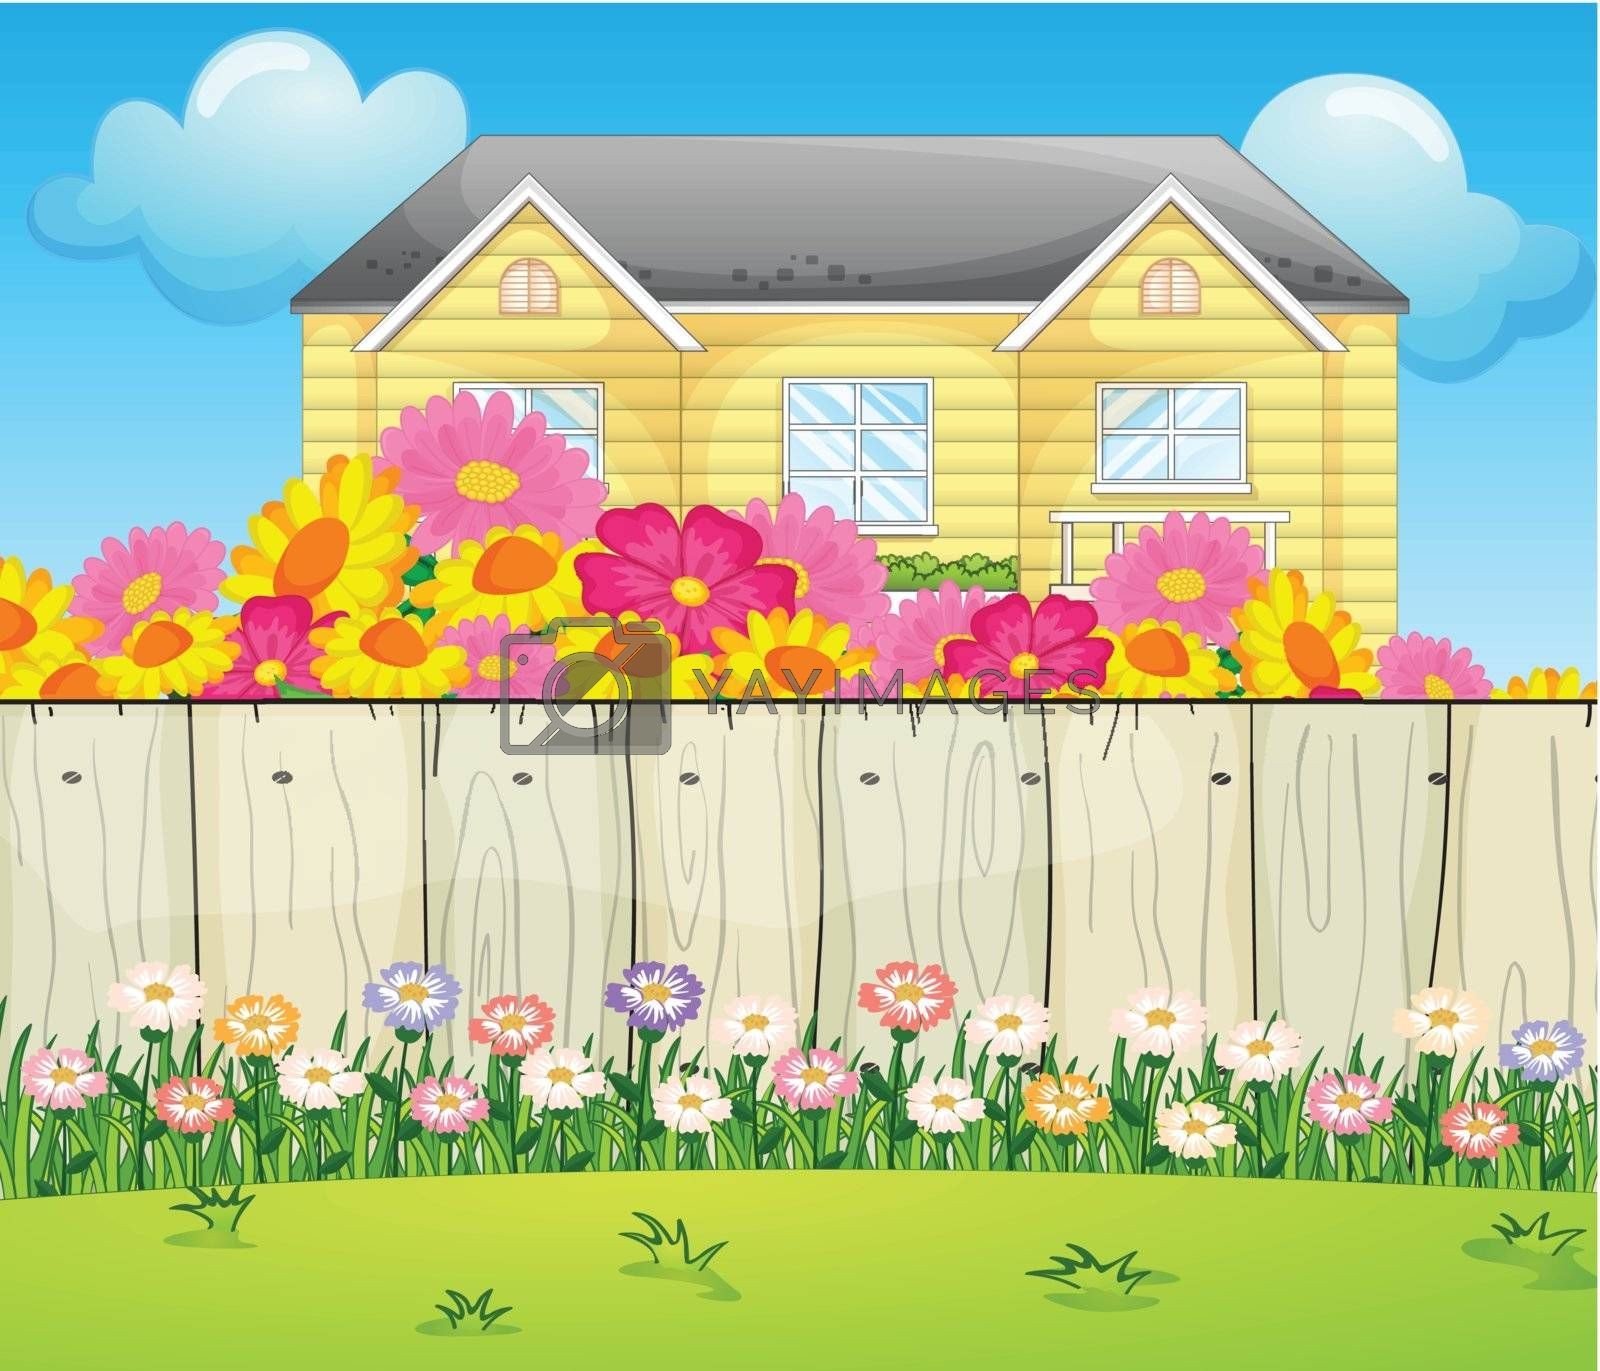 Illustration of a house surrounded with colorful flowers